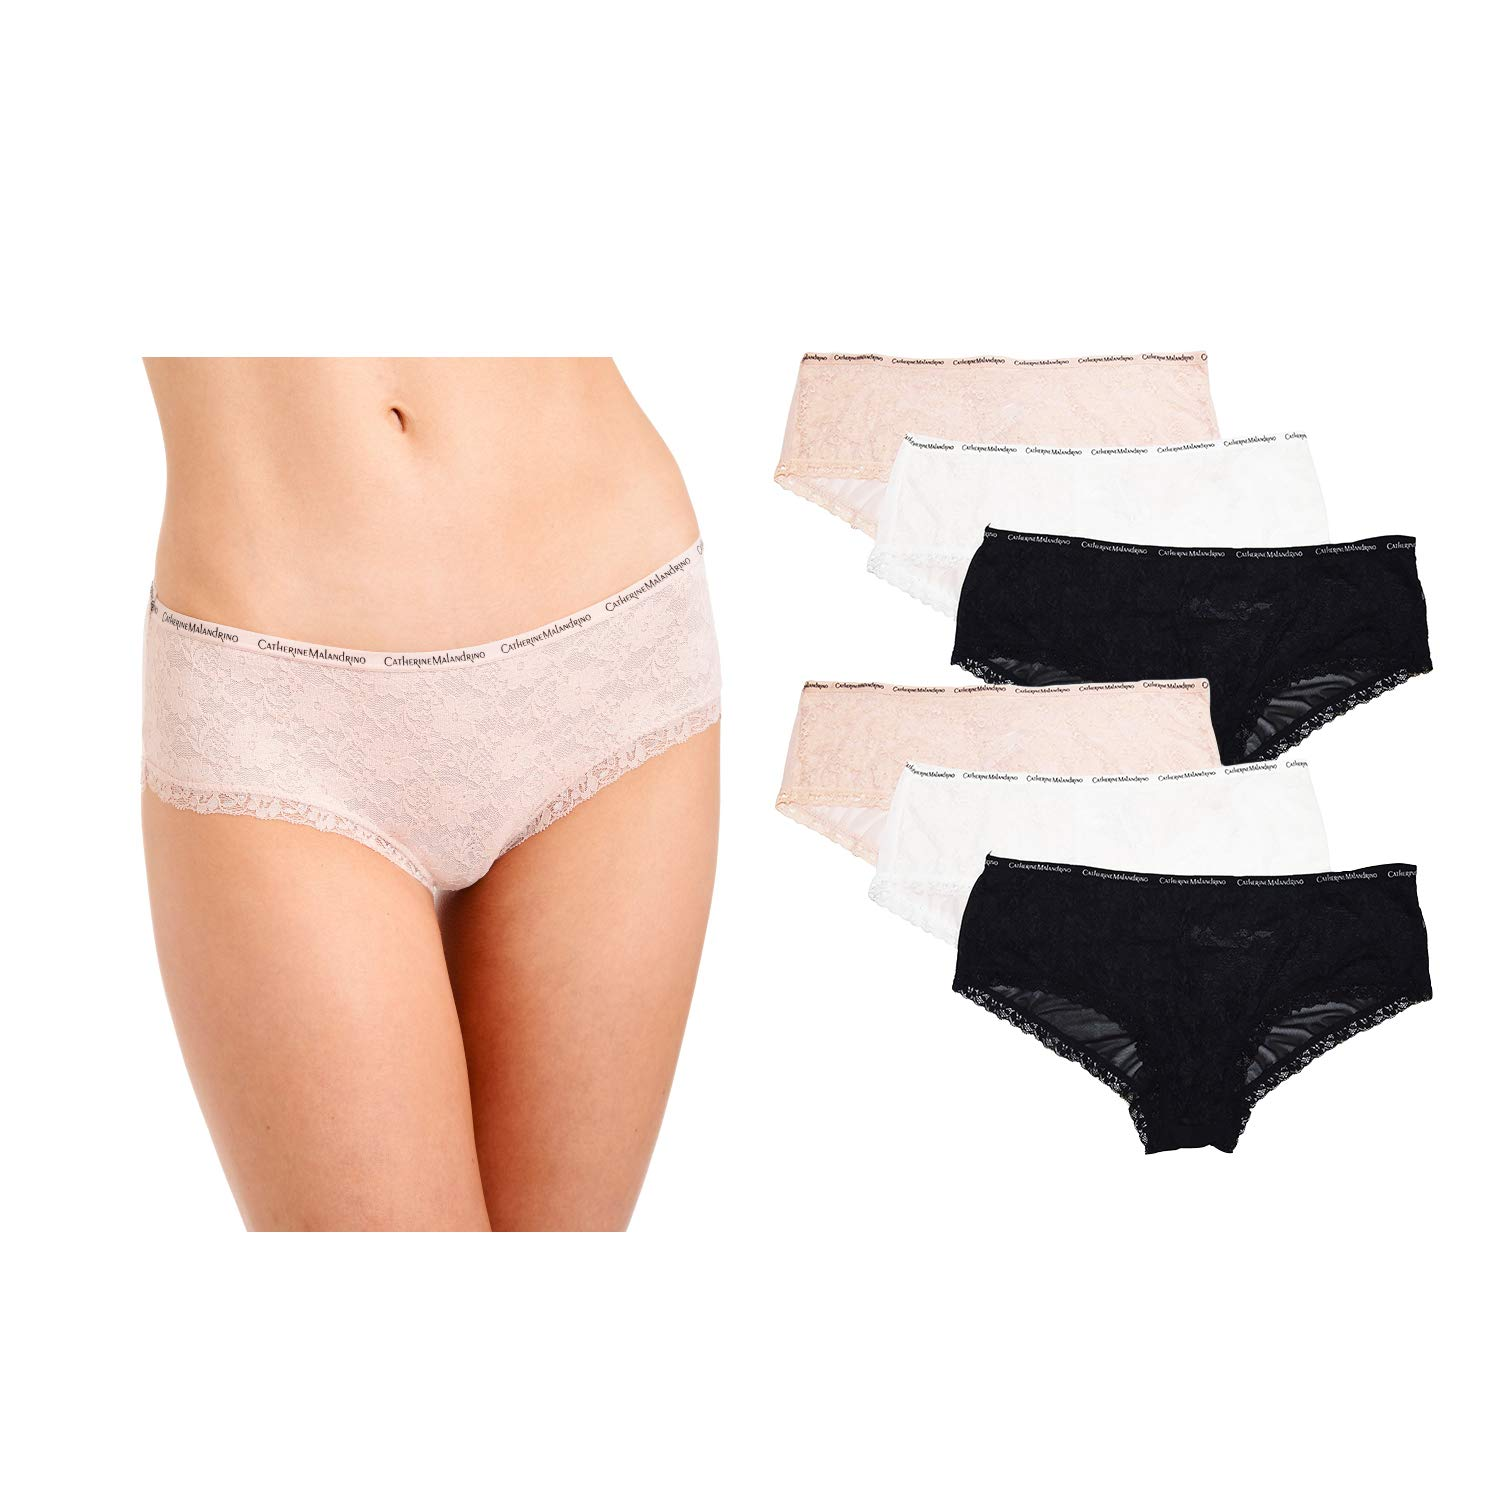 CATHERINE MALANDRINO Women's 6-Pack Seamless Lace Underwear Hipster Panties , Black/White/Pink